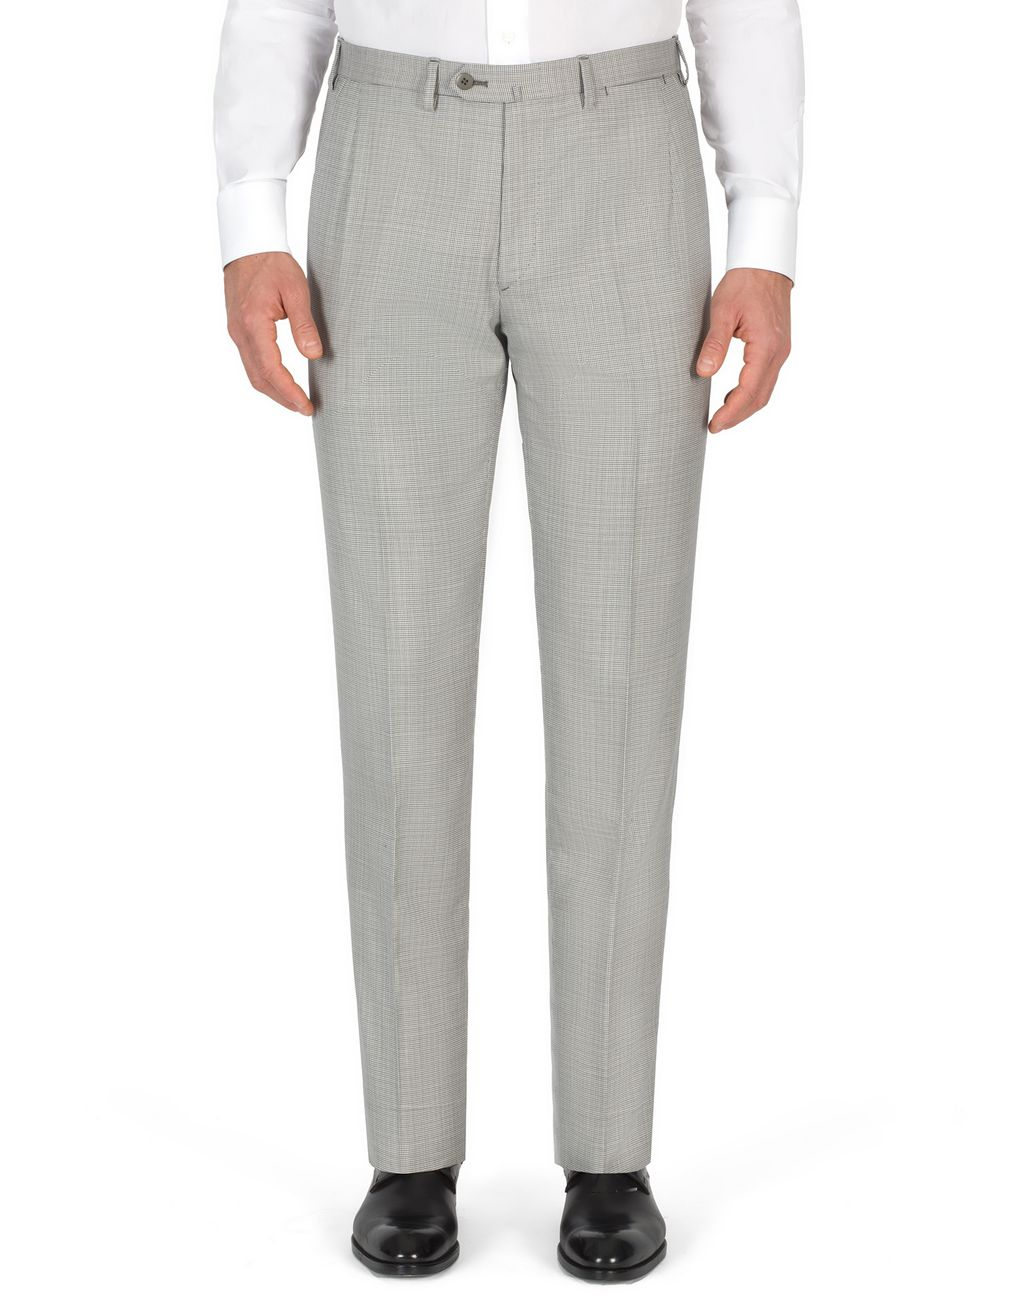 BRIONI White and Gray Micro Houndstooth Brunico Suit  Suits & Jackets Man e